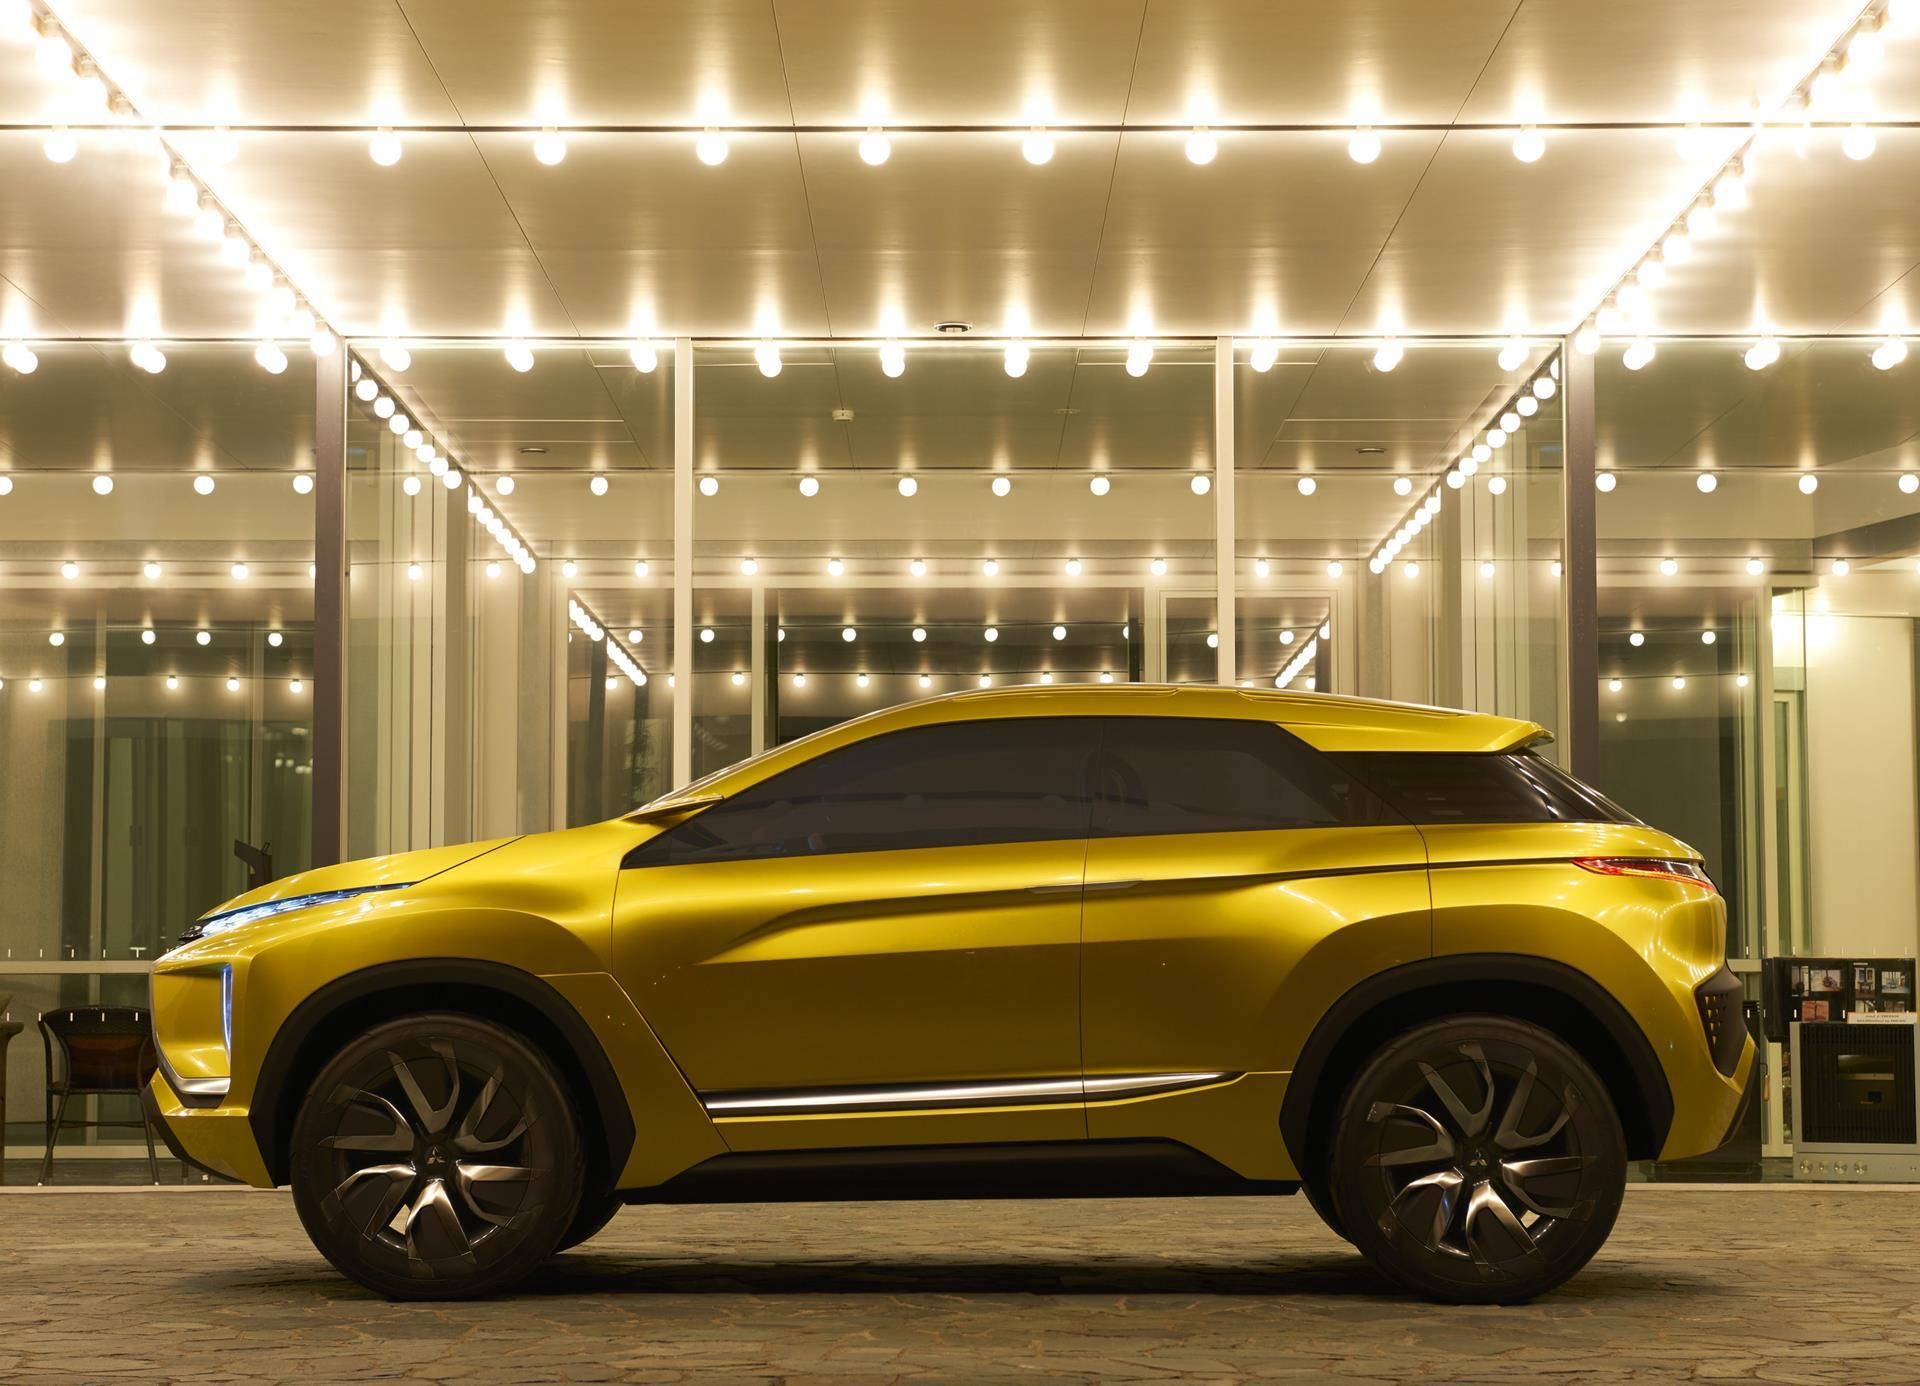 Lamborghini Suv Price >> 2016 Mitsubishi eX Concept News and Information, Research